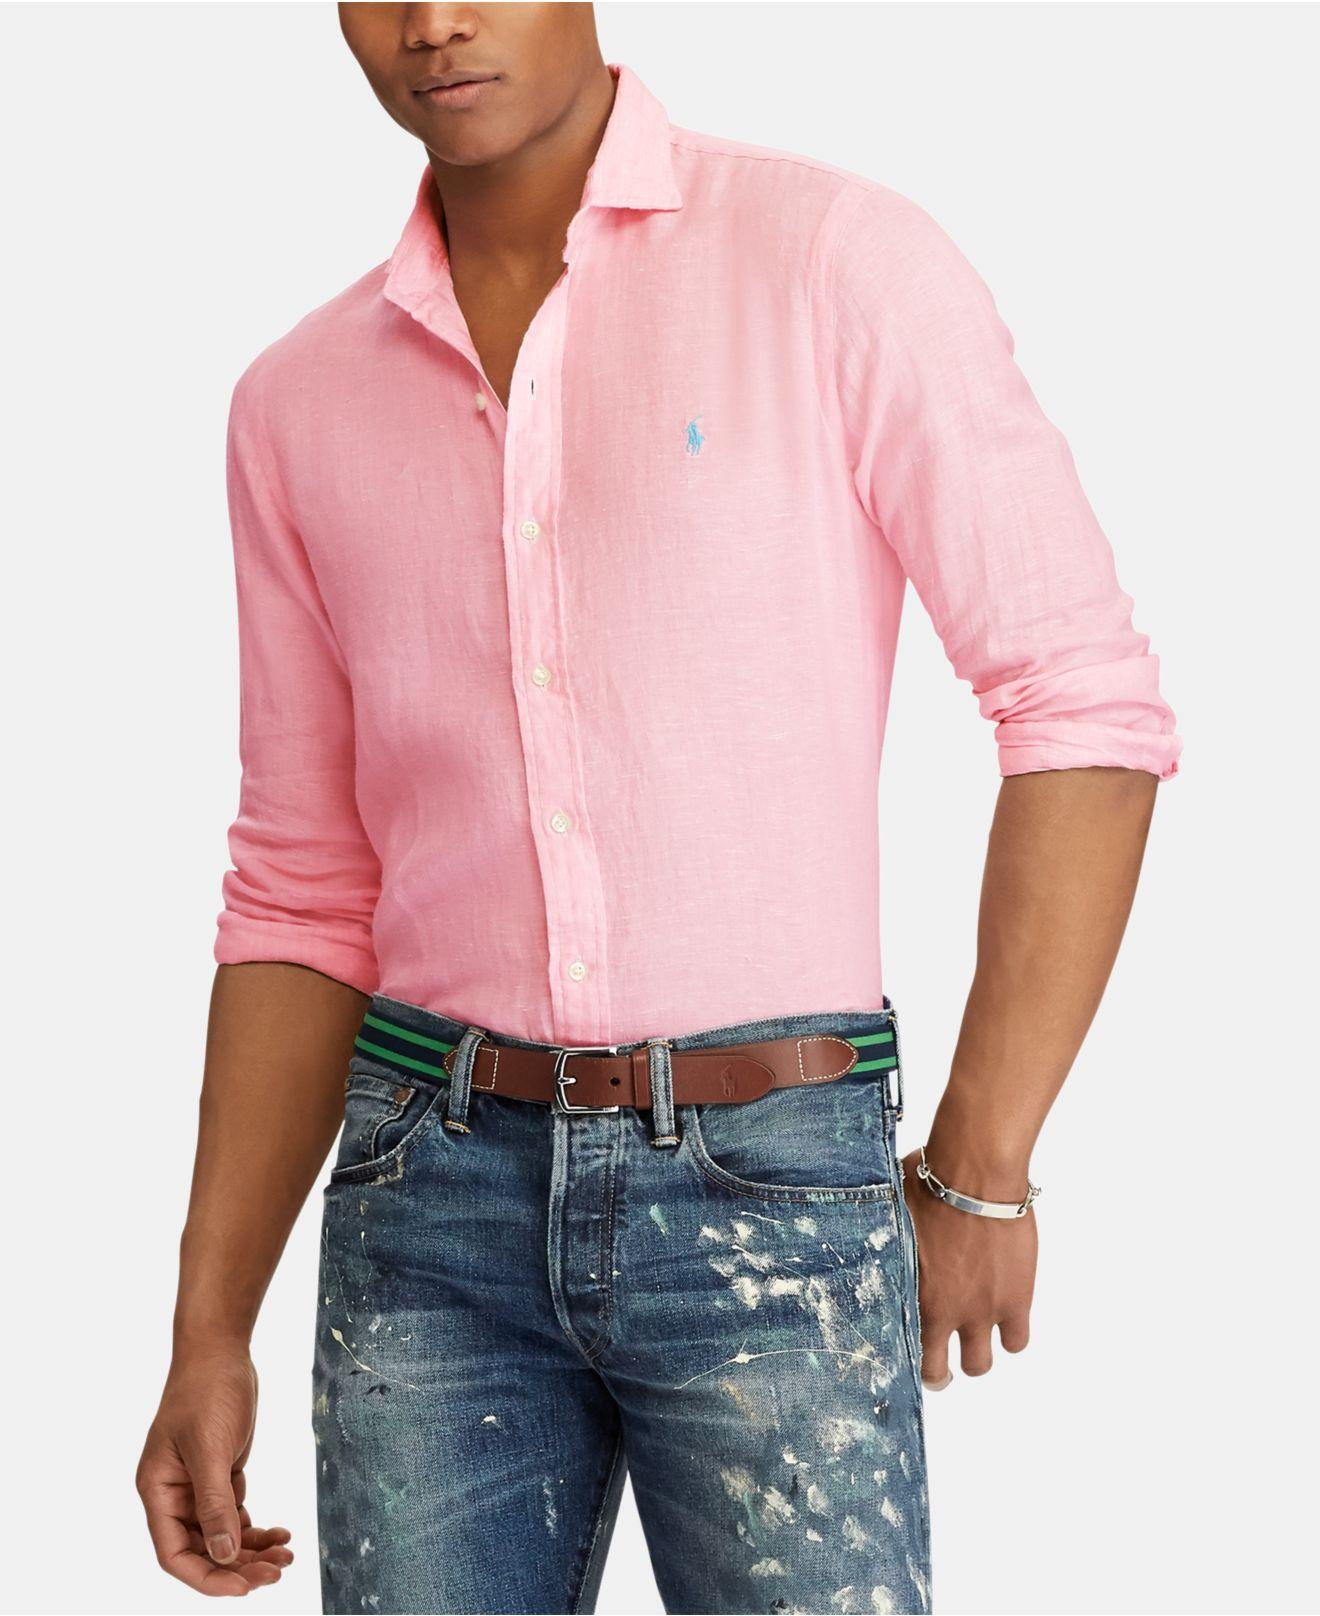 e7f0e4fb0 Lyst - Polo Ralph Lauren Slim Fit Linen Shirt in Pink for Men - Save 60%